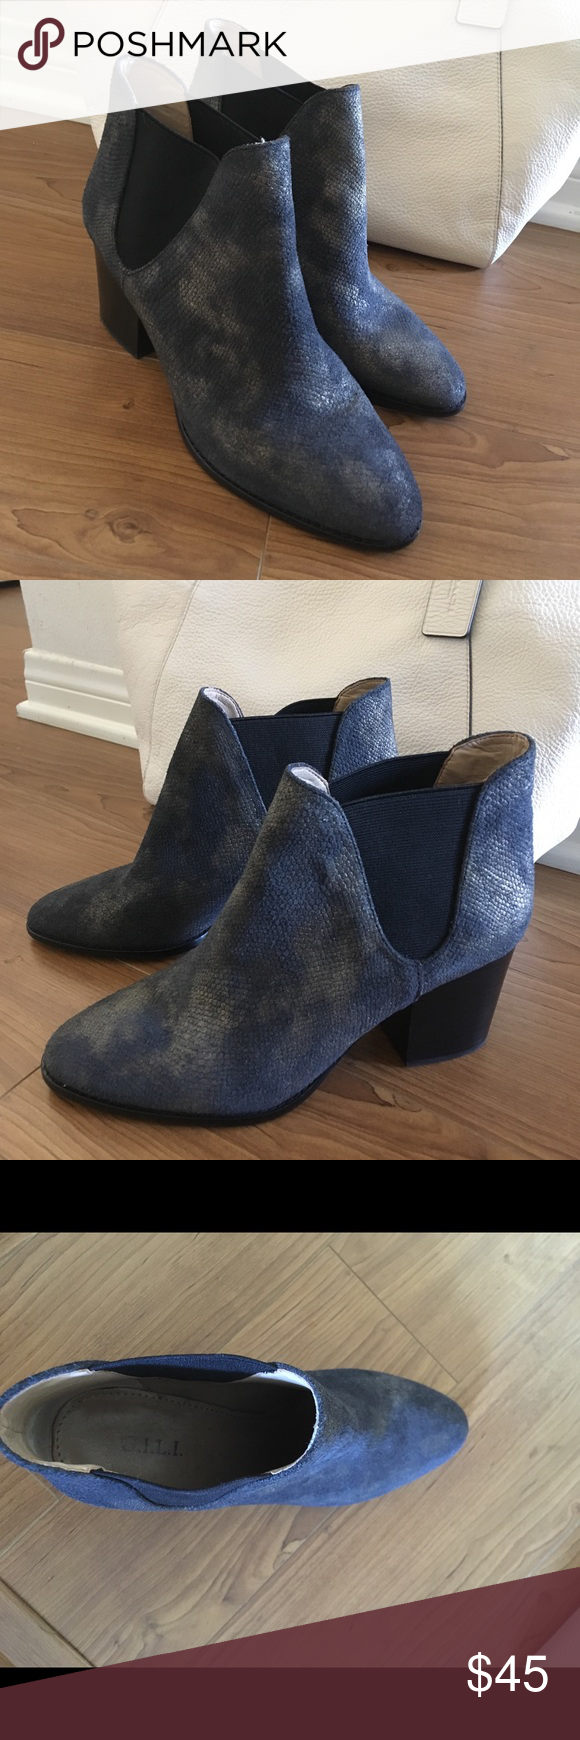 BOOTIES 😍 The color of these are very unique, navy and gold. Super comfortable, elastic stretch to slide on and off. Block heel 2in. Size 7. Brand is GILI GILI Shoes Ankle Boots & Booties